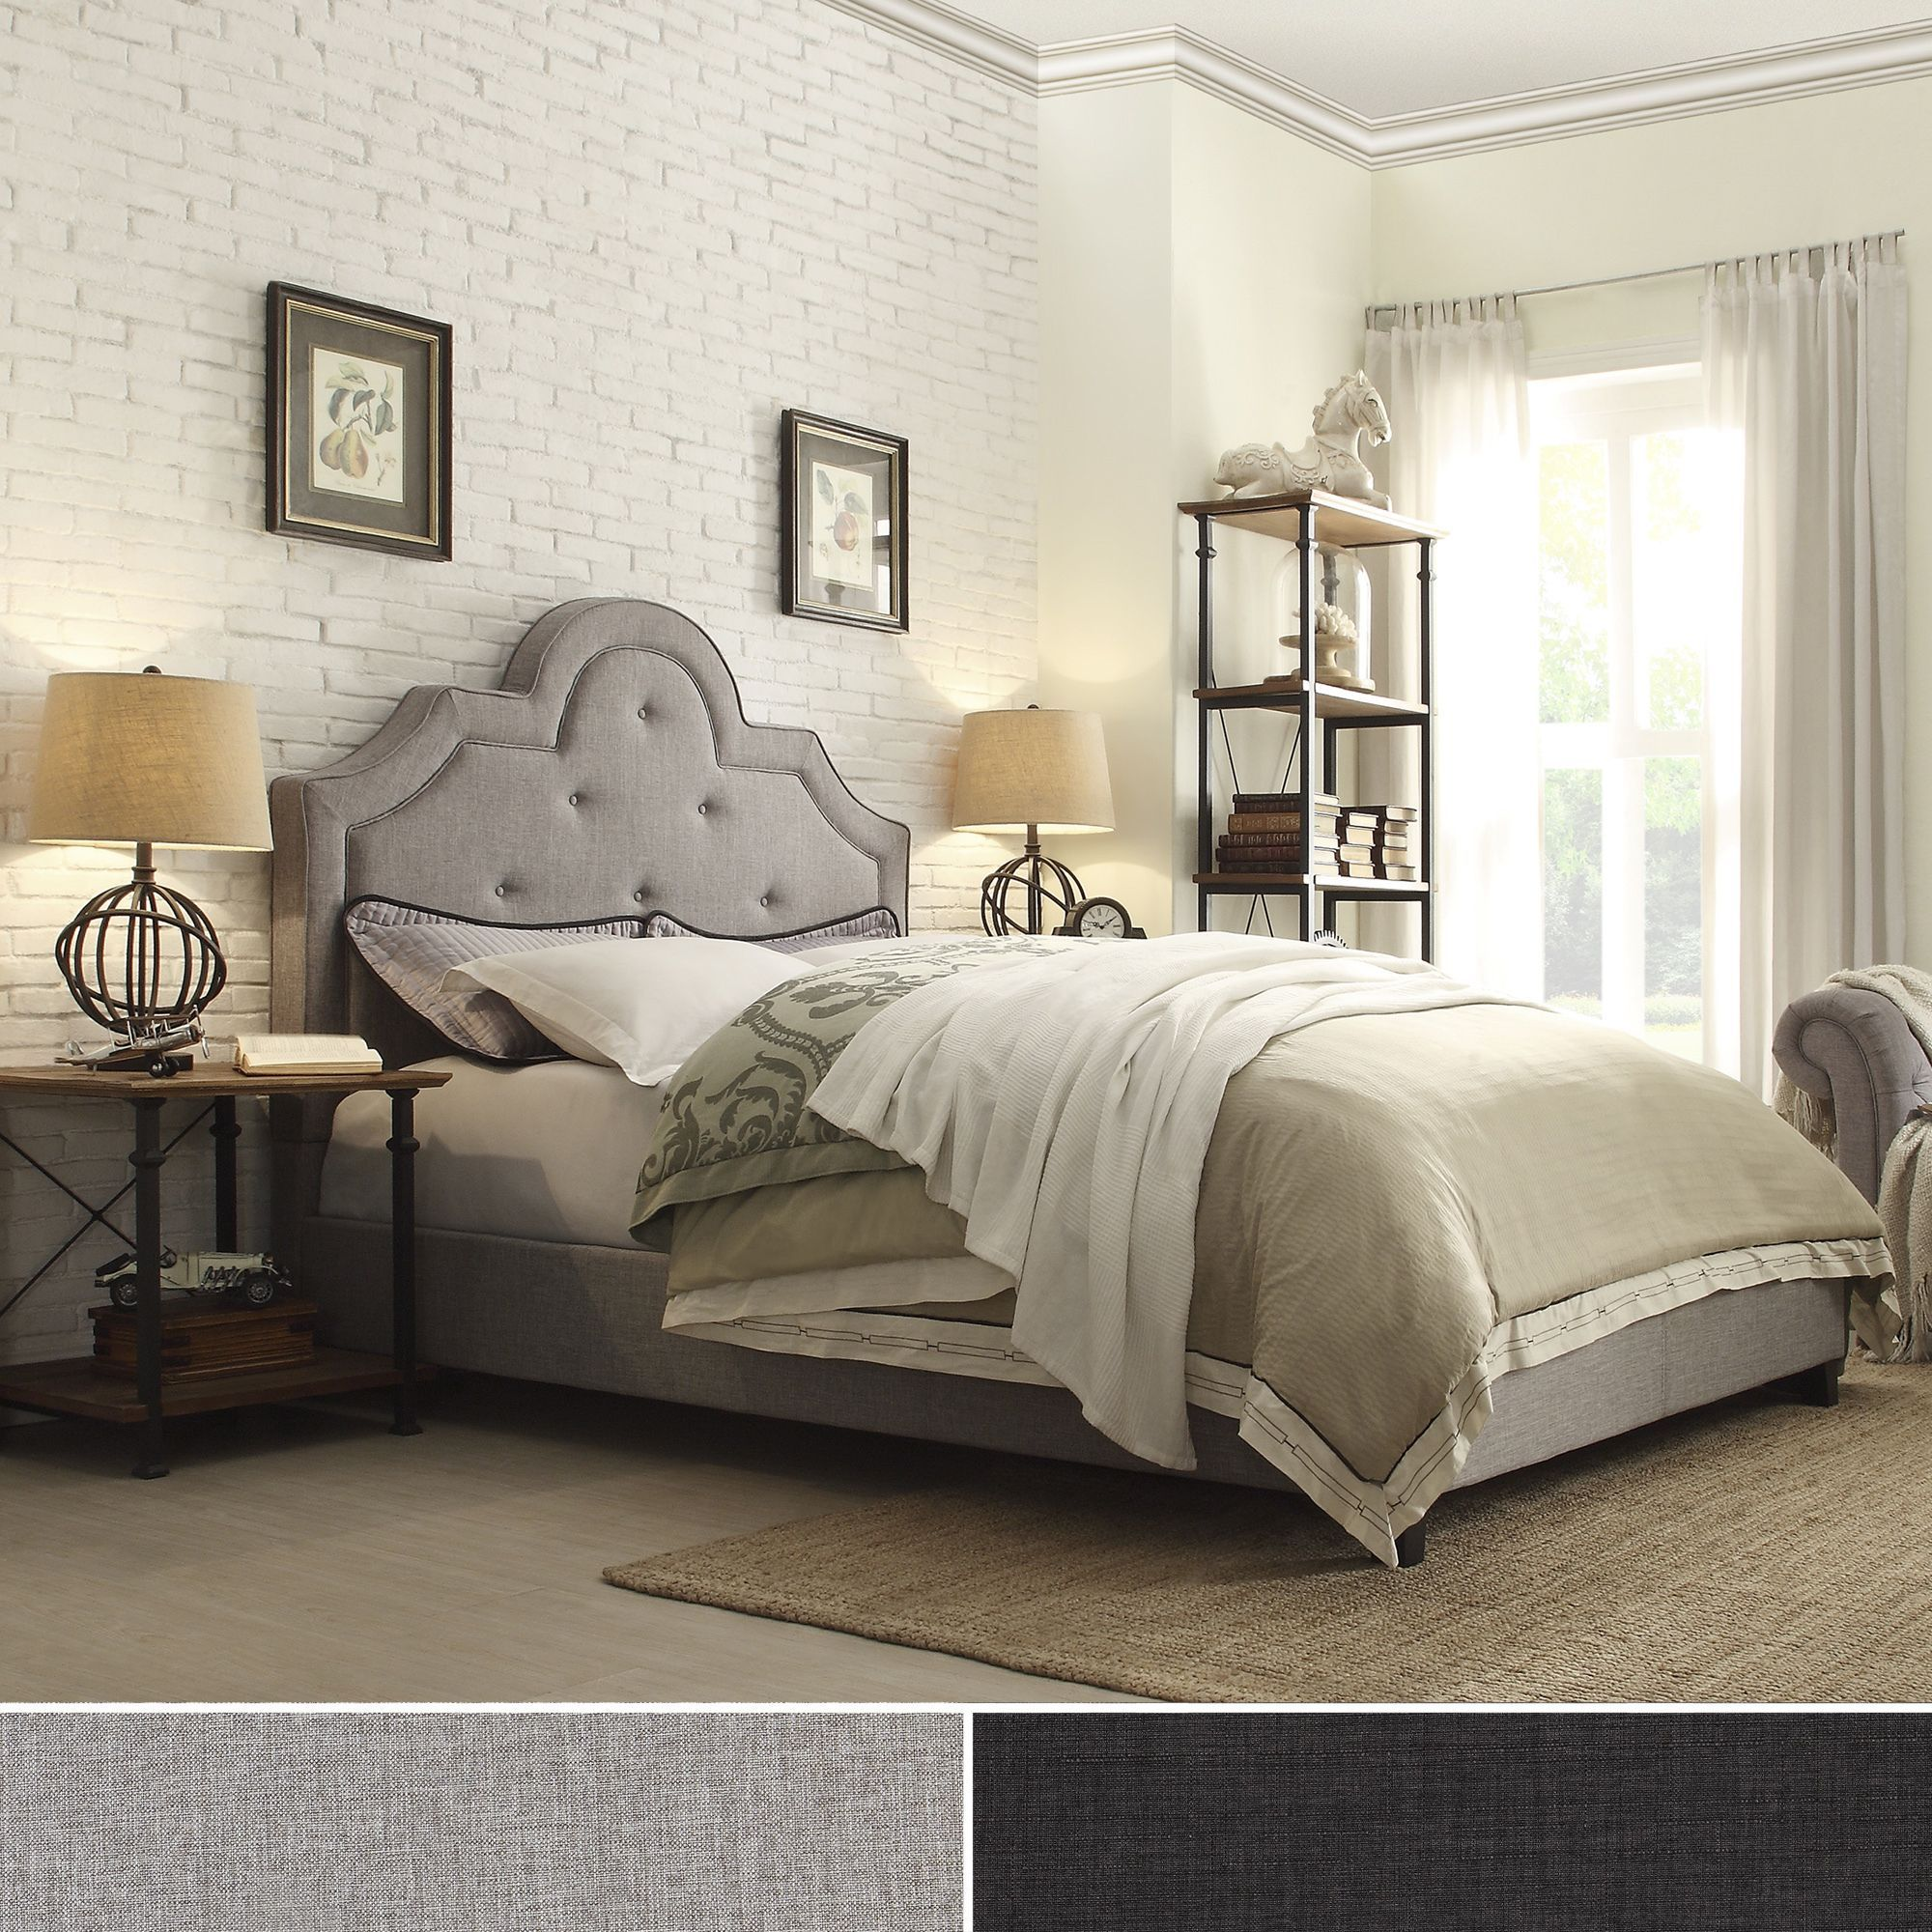 Create a luxurious and romantic boudoir with this glamorous headboard.  Upholstered in luxurious linen,